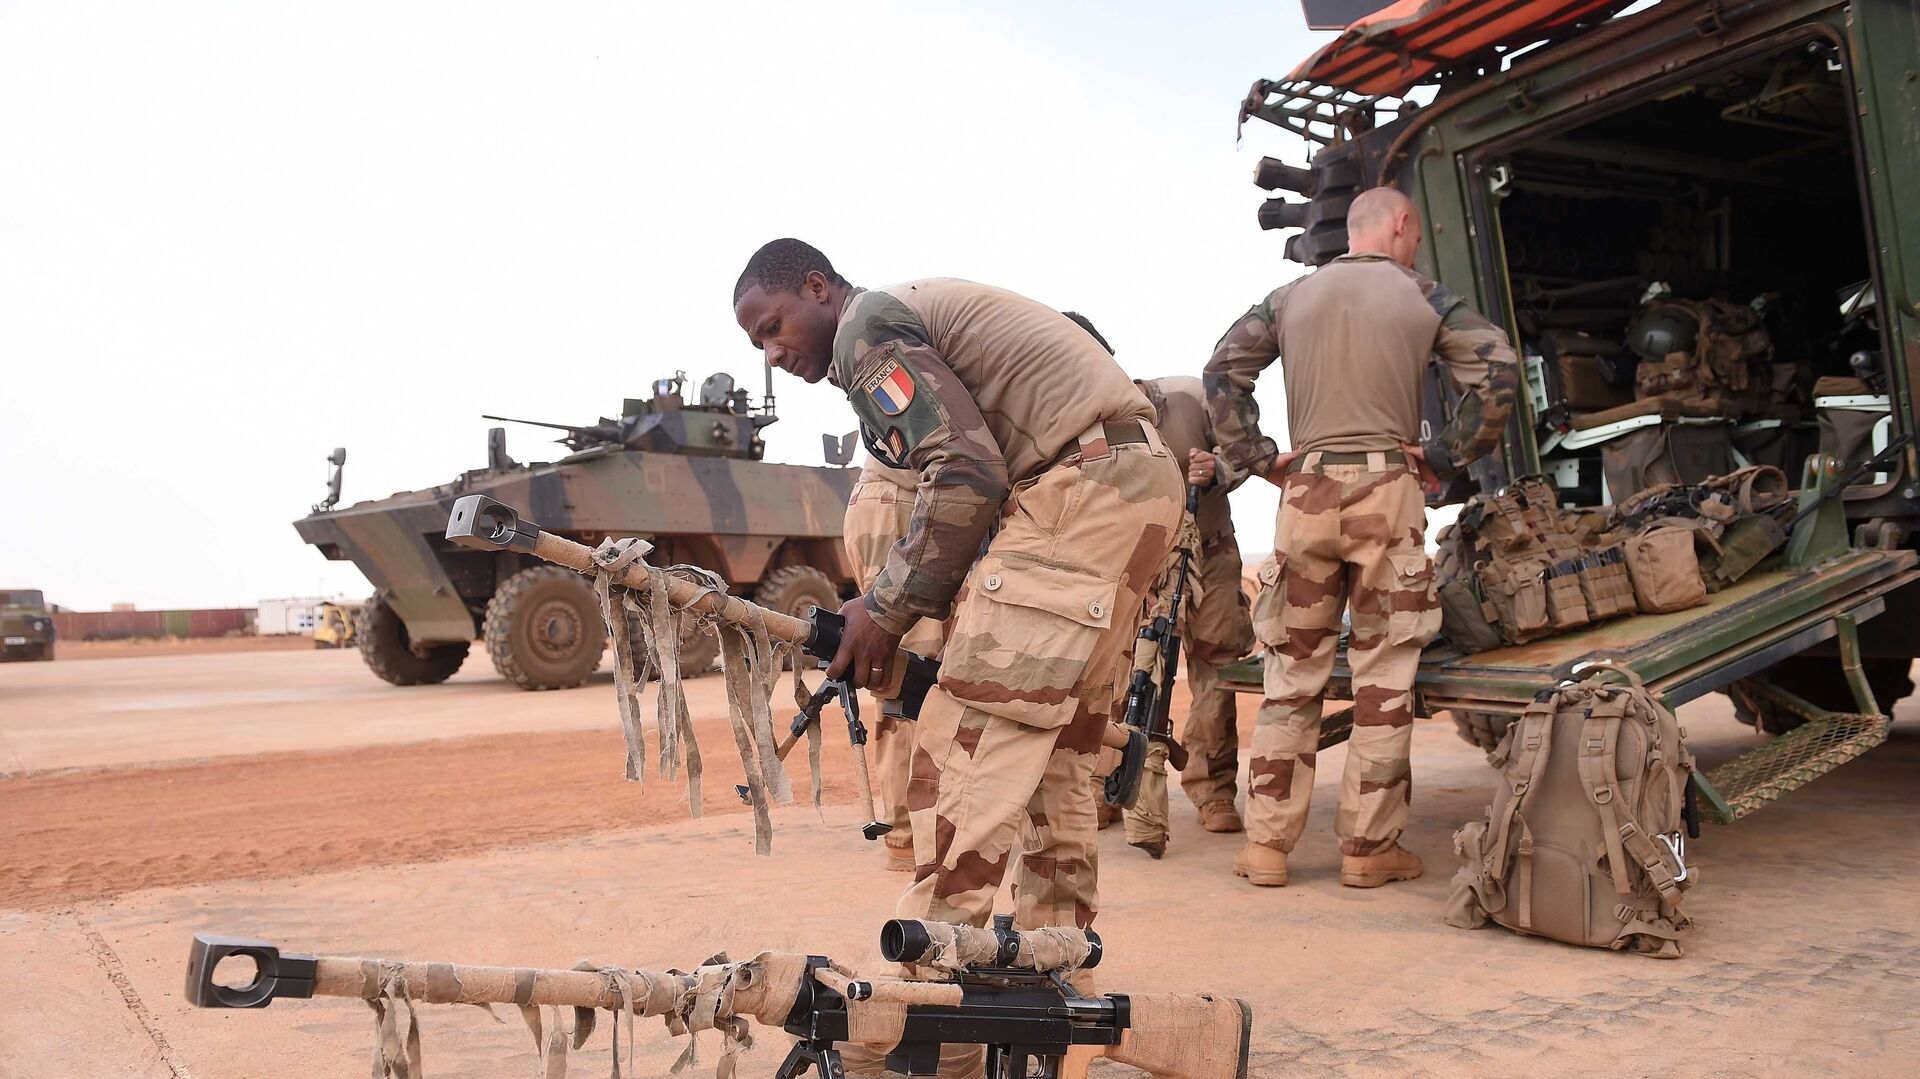 A French soldier prepares for the visit of French President Emmanuel Macron in Africa's Sahel region in Gao, northern Mali, 19 May 2017 - Sputnik International, 1920, 26.09.2021